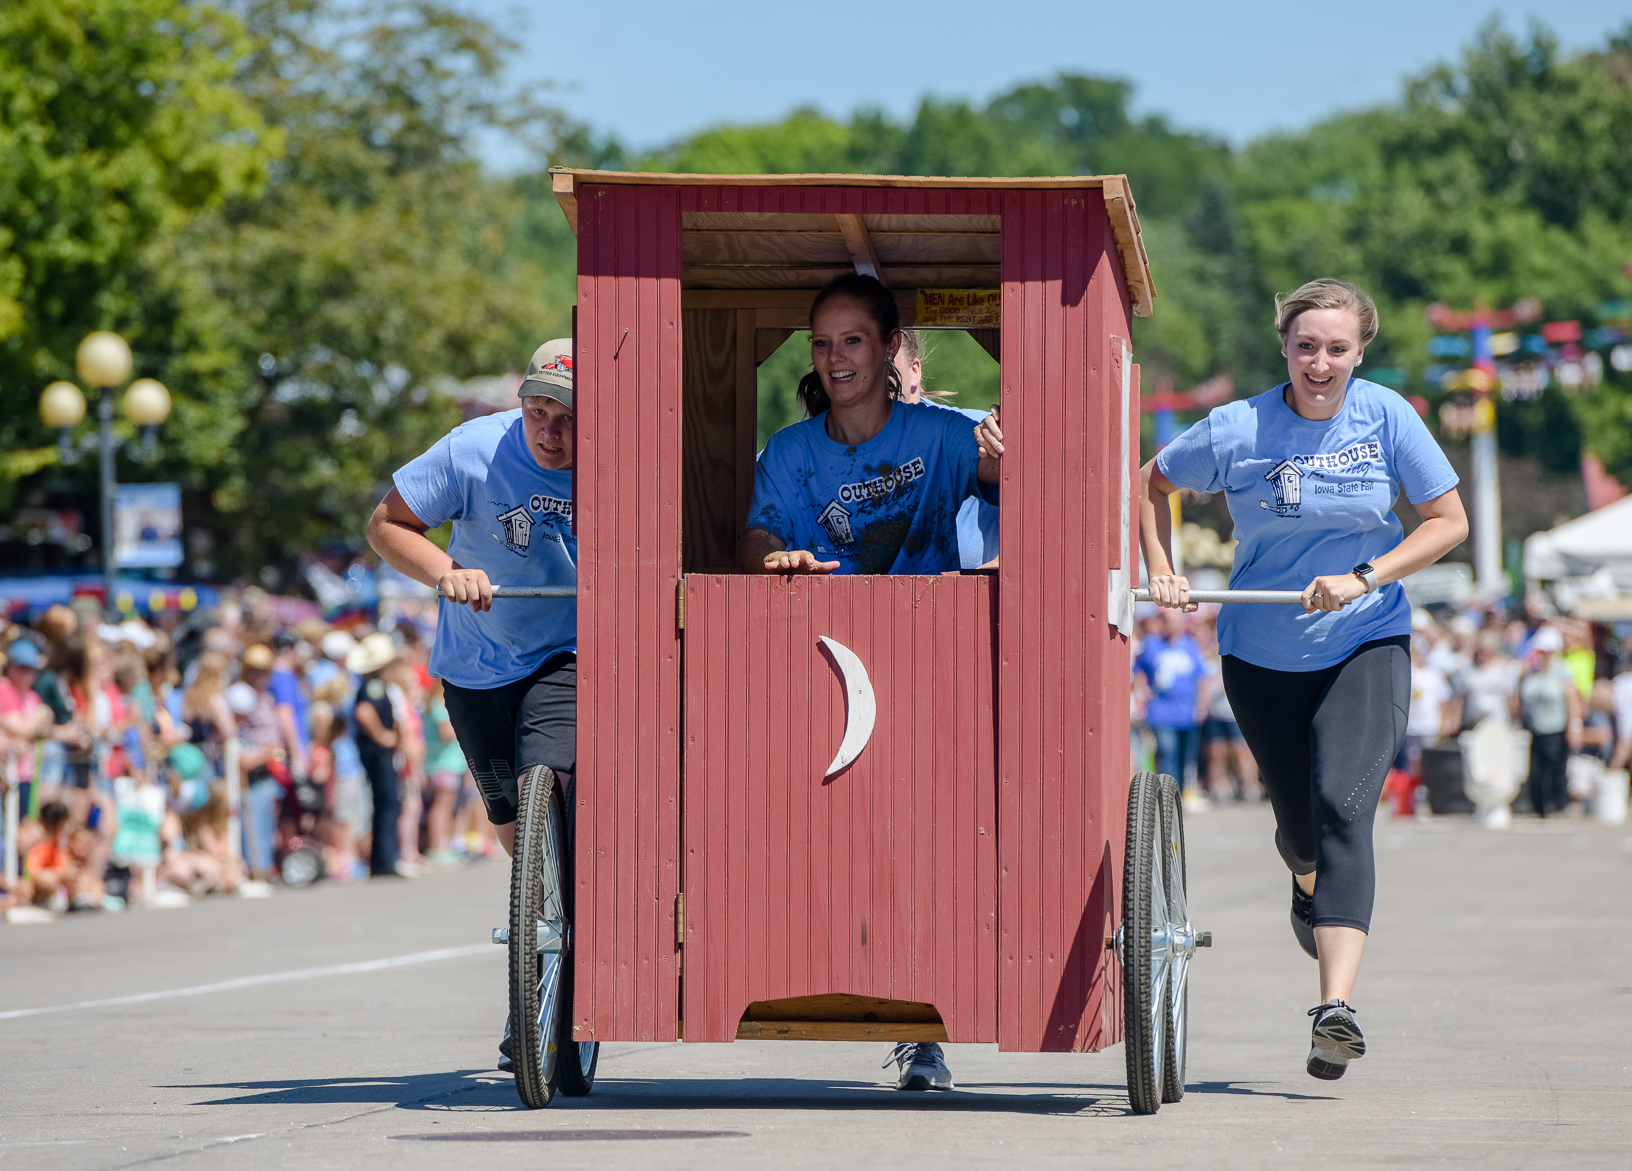 A team competes in the outhouse race on the Grand Concourse of the Iowa State Fair. The outhouse race is where teams create home-made outhouses on wheels and compete in a relay race. Photo credit: Joseph L. Murphy/Iowa Soybean Association